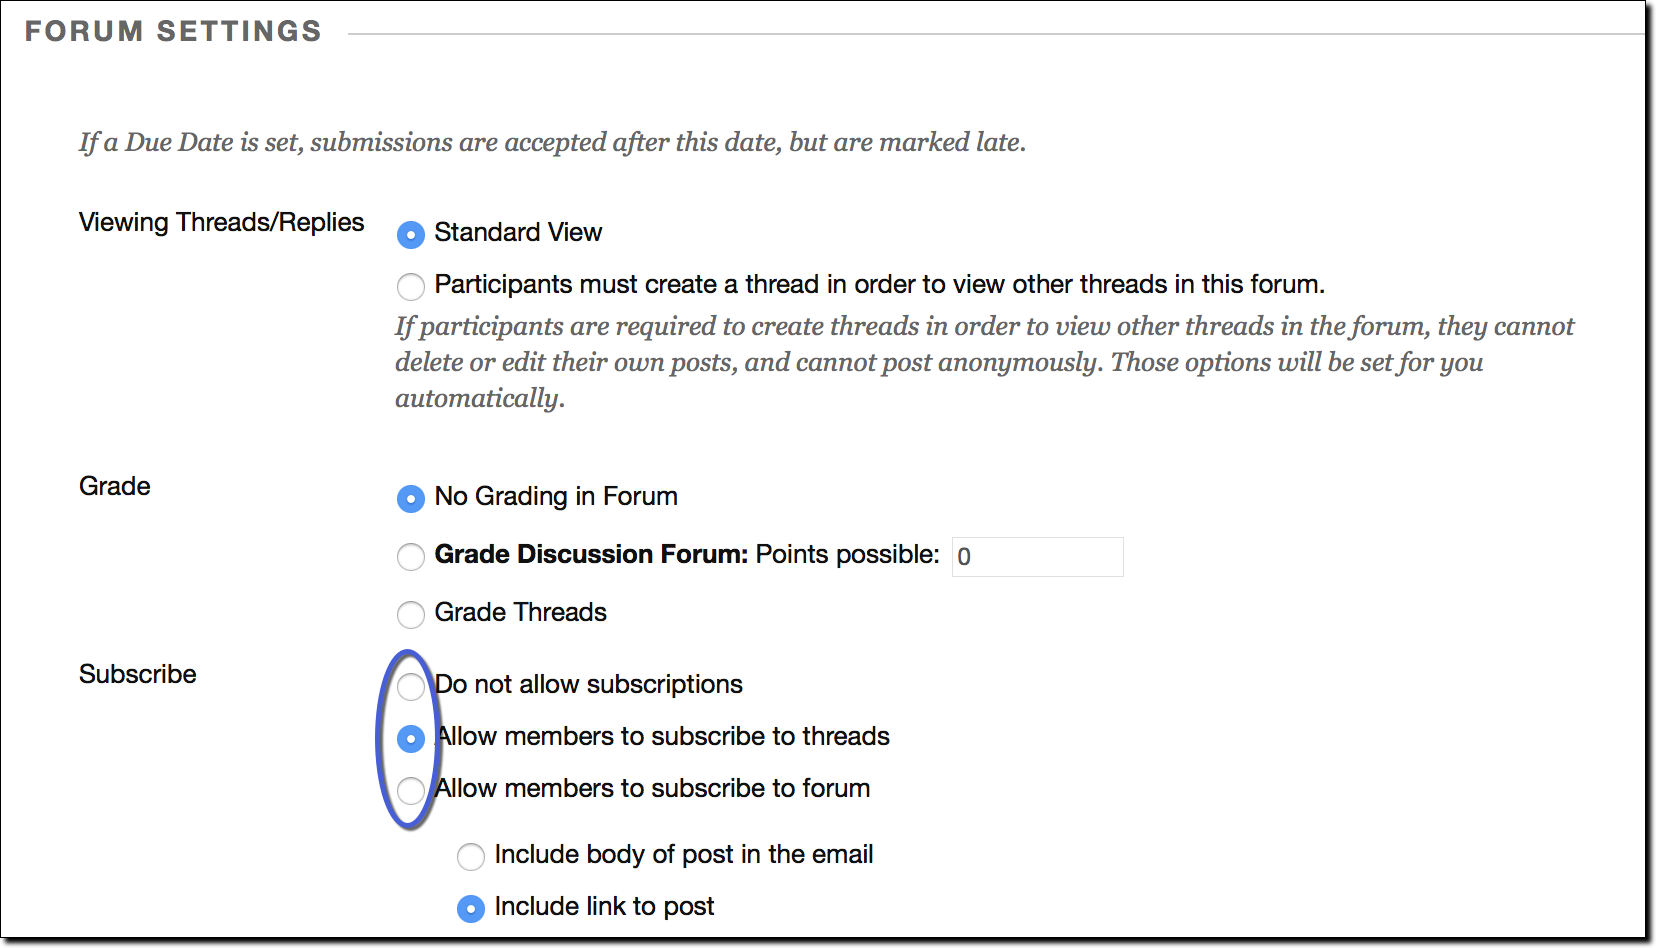 Subscription menu options highlighted